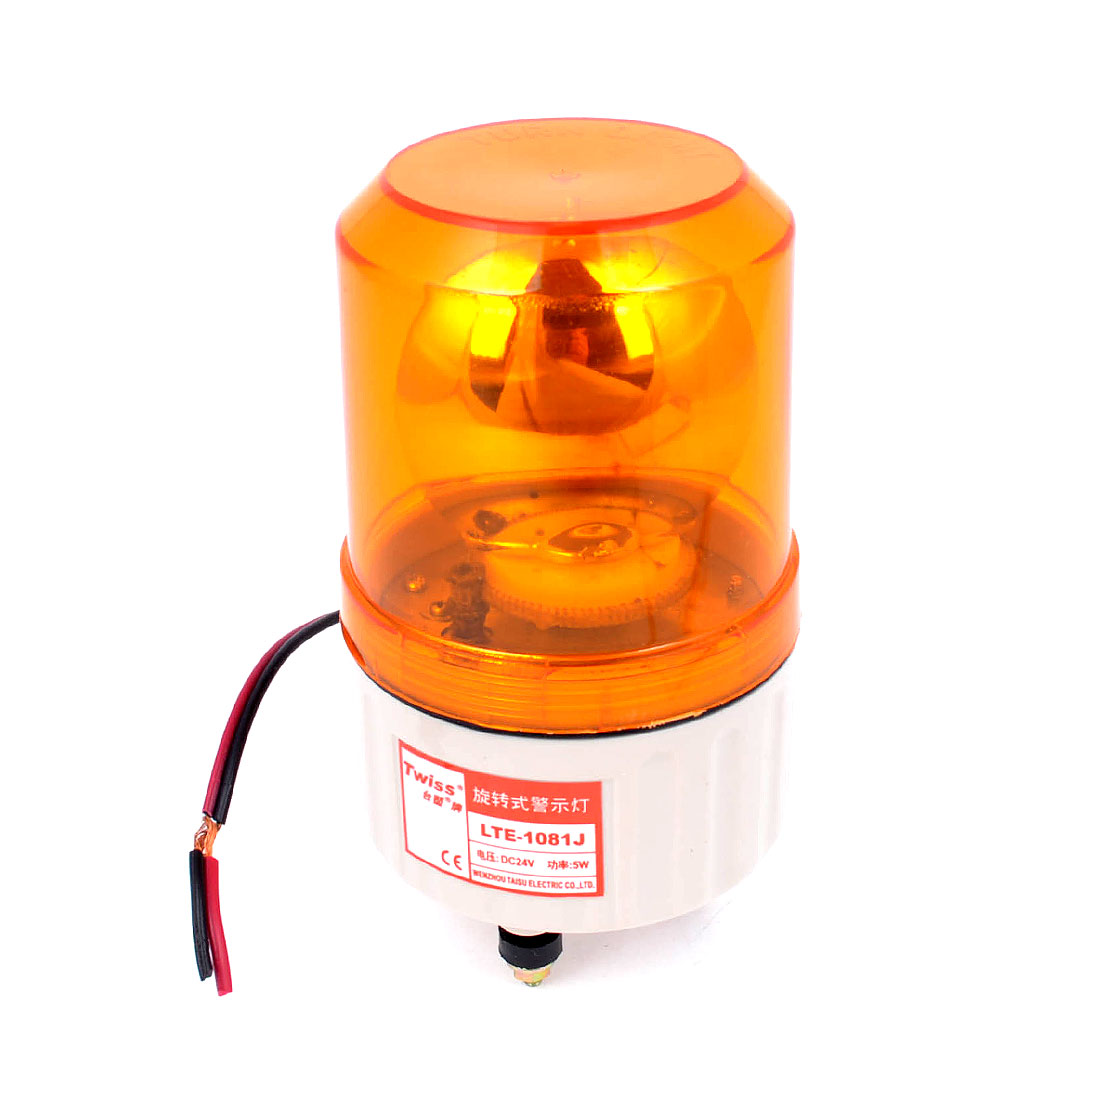 DC 24V 5W Industrial Yellow Rotating Light Bulb Mechanical Signal Warning Lamp